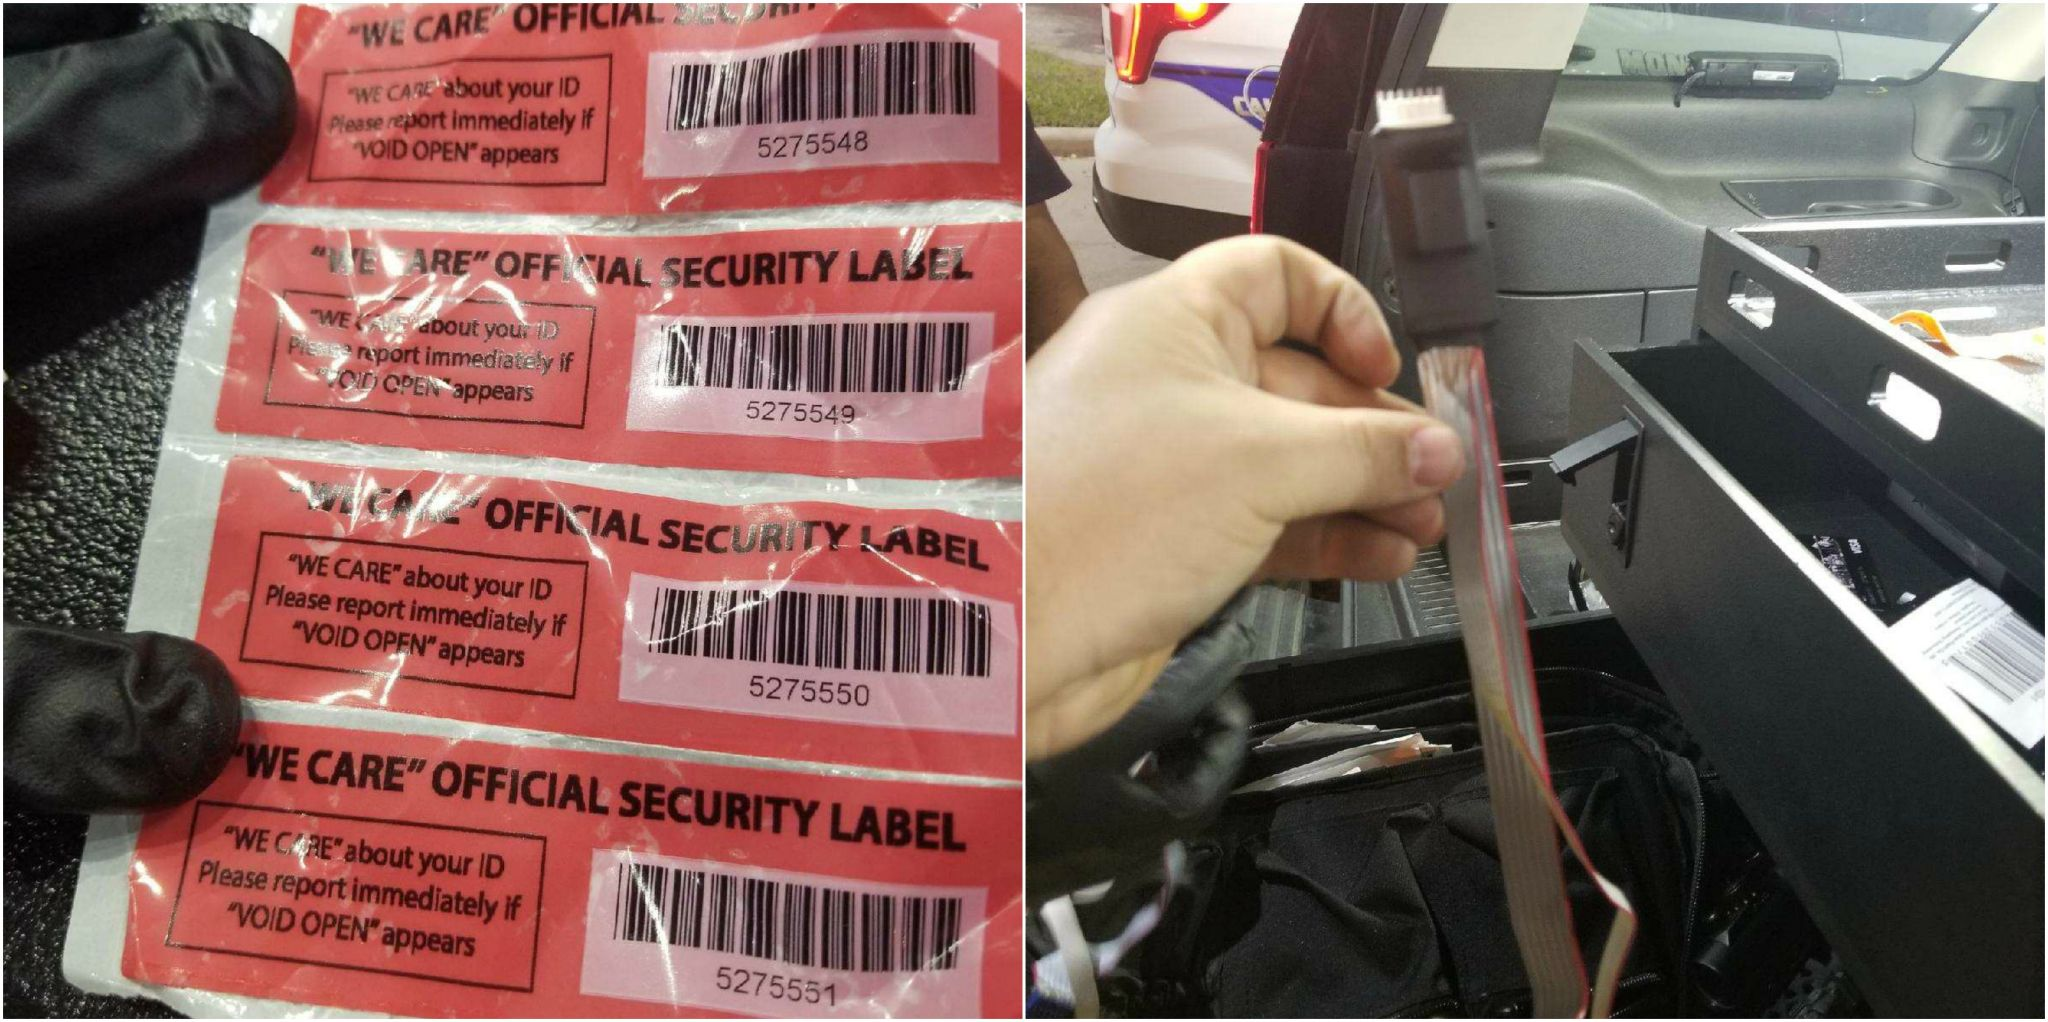 See the sophisticated methods credit card skimmers are using at Texas gas pumps